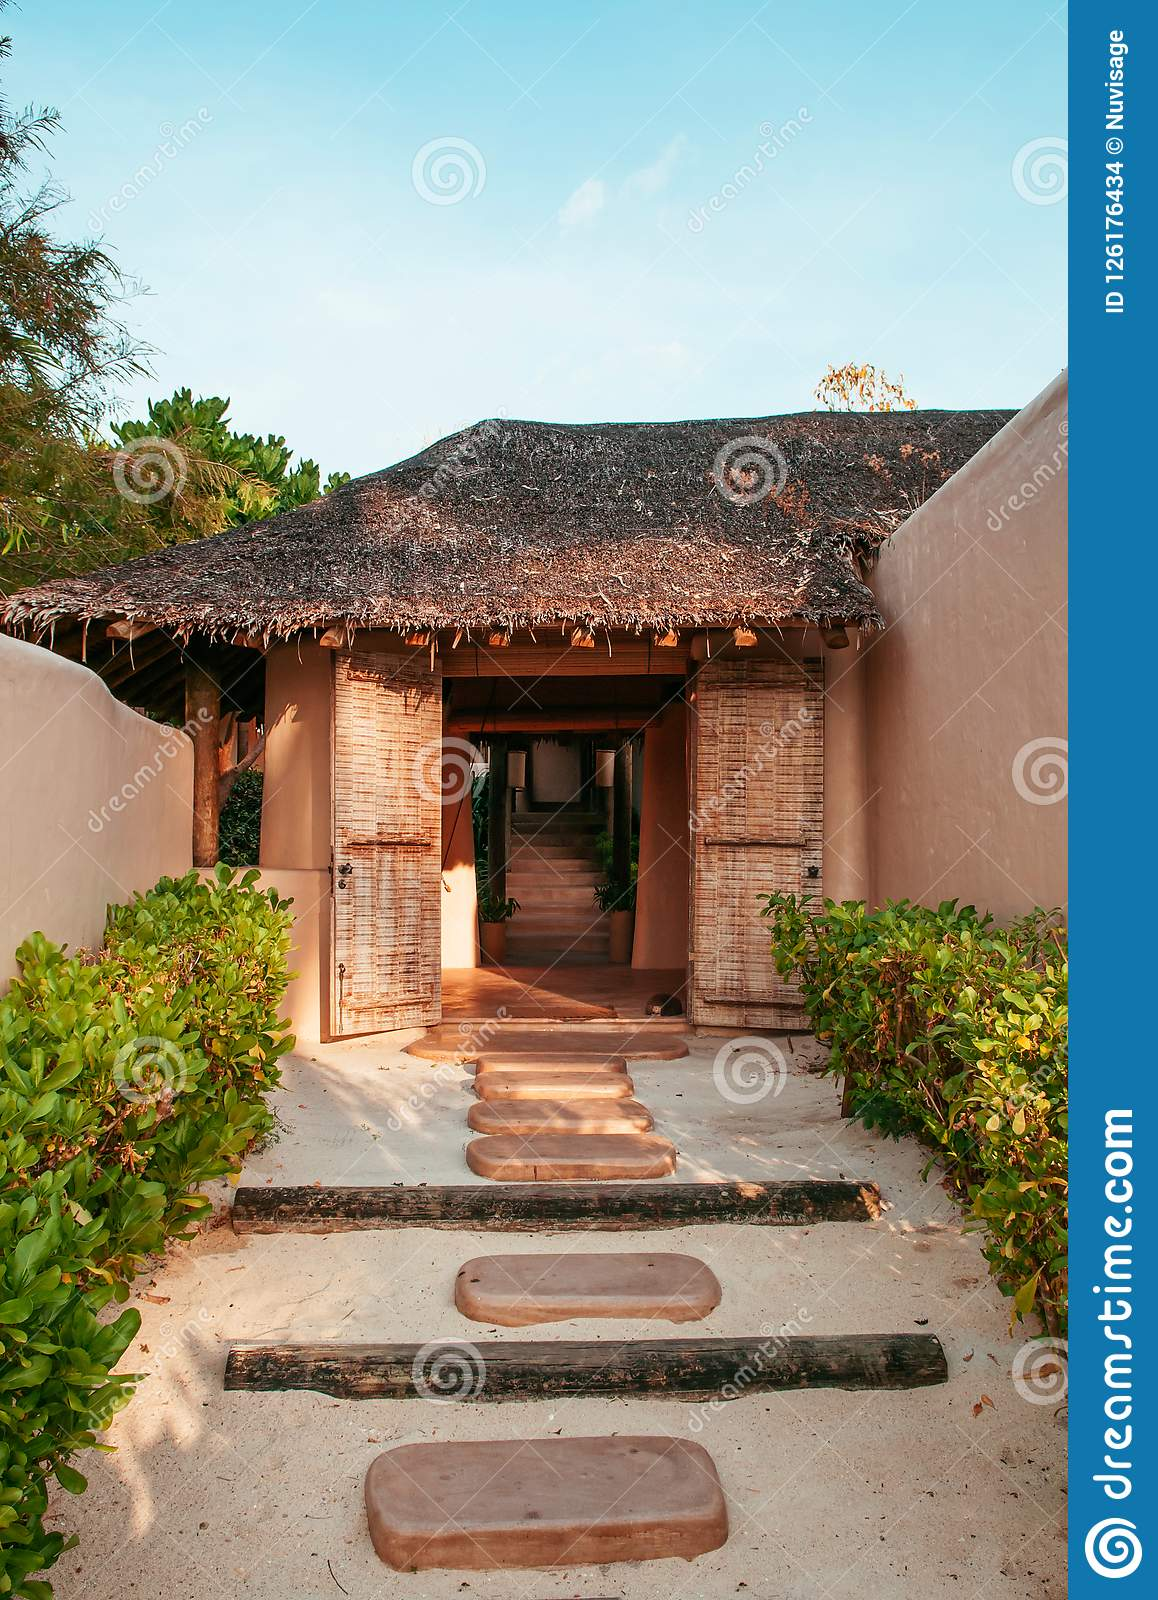 Vacation Tropical Resort In Garden With Clay House Design